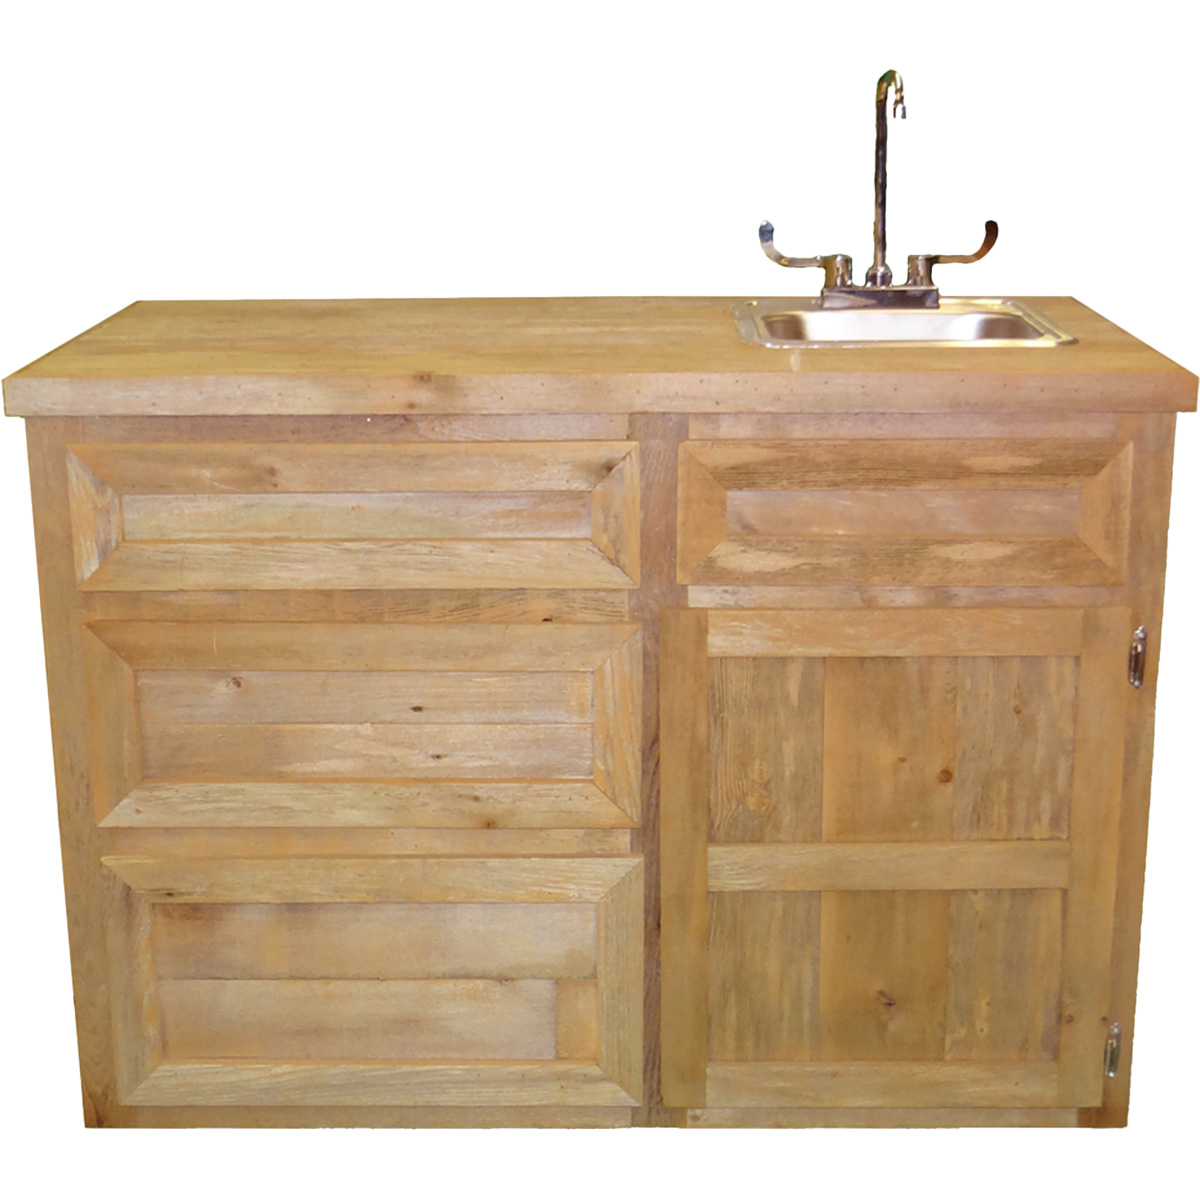 Rustic Outdoor Bar with Sink